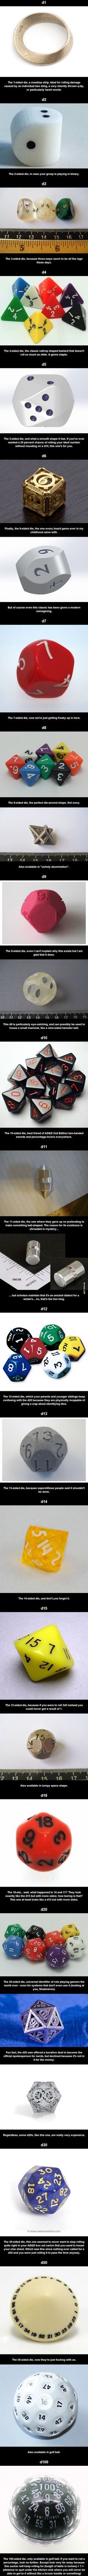 The Wonderful World of dice.